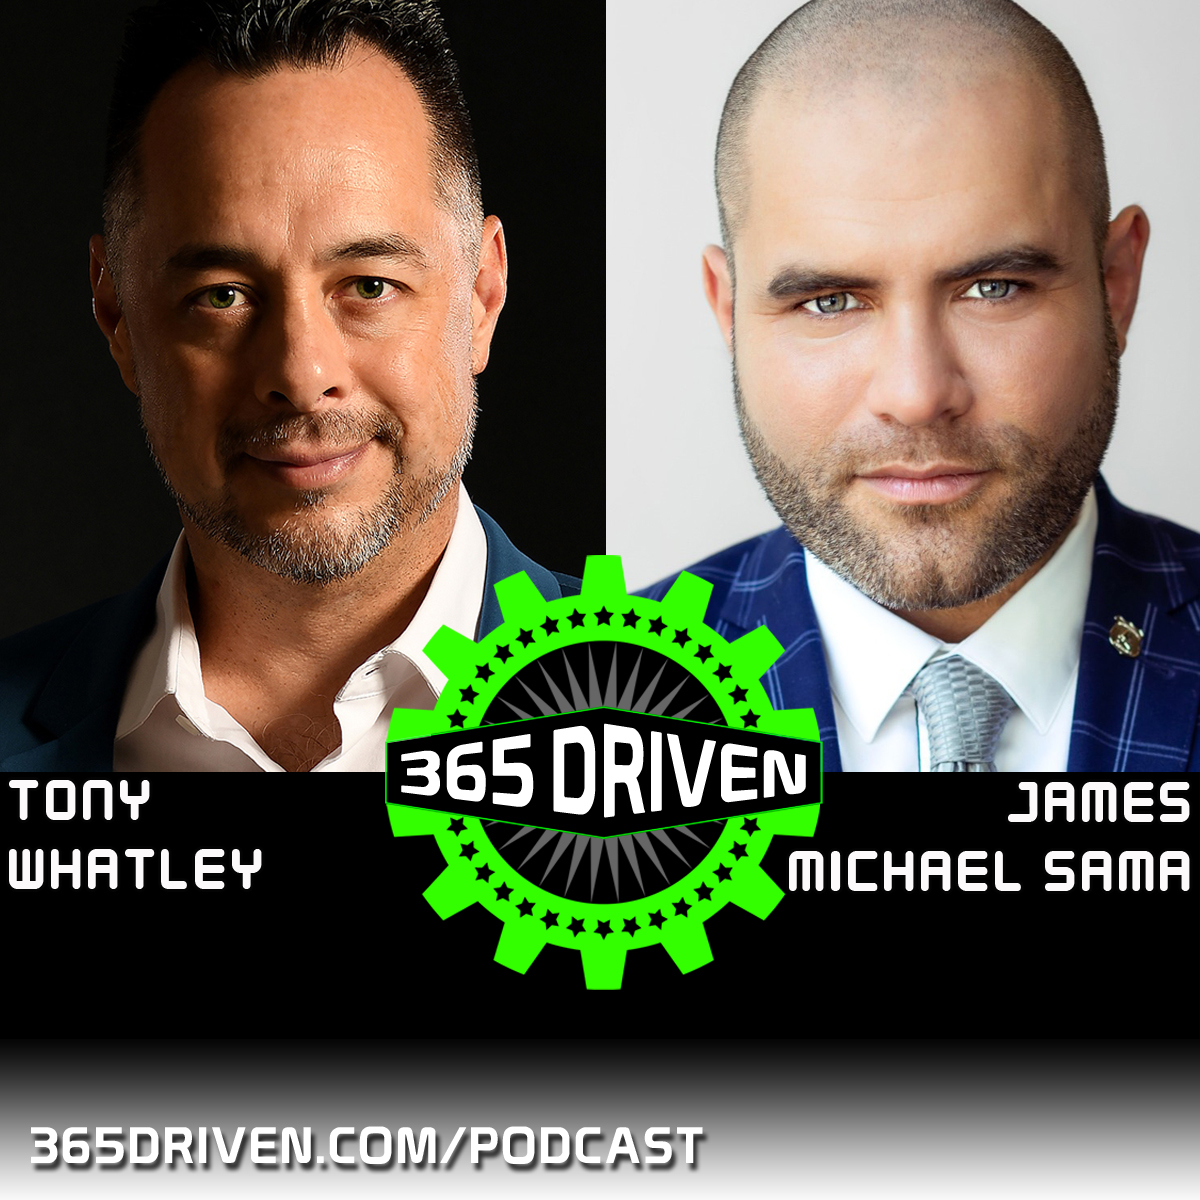 Building Stronger Relationships - With James Michael Sama - EP0094 show art